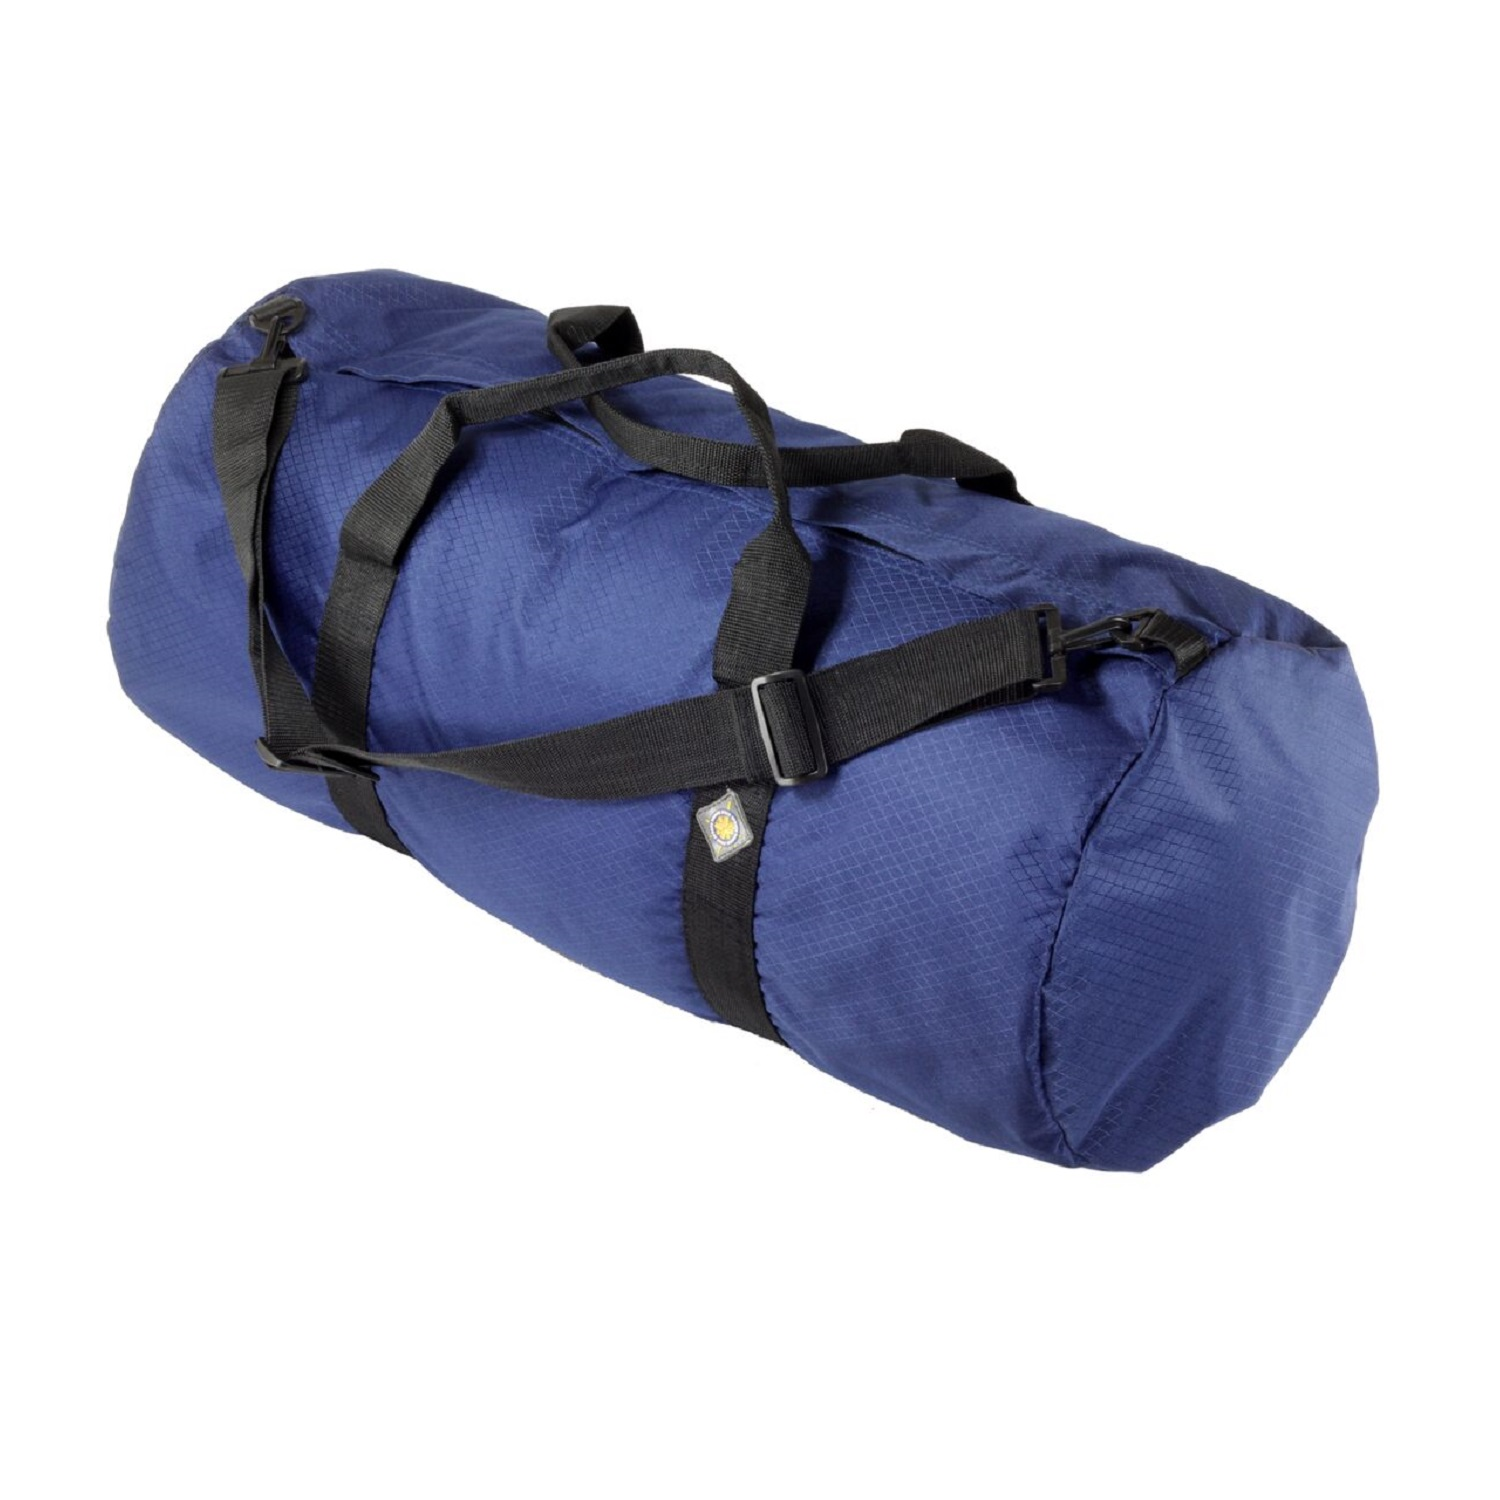 Northstar Bags North Star Sport Duffle Bag 14in Diam 30in L, Pacific Blue by Northstar Bags